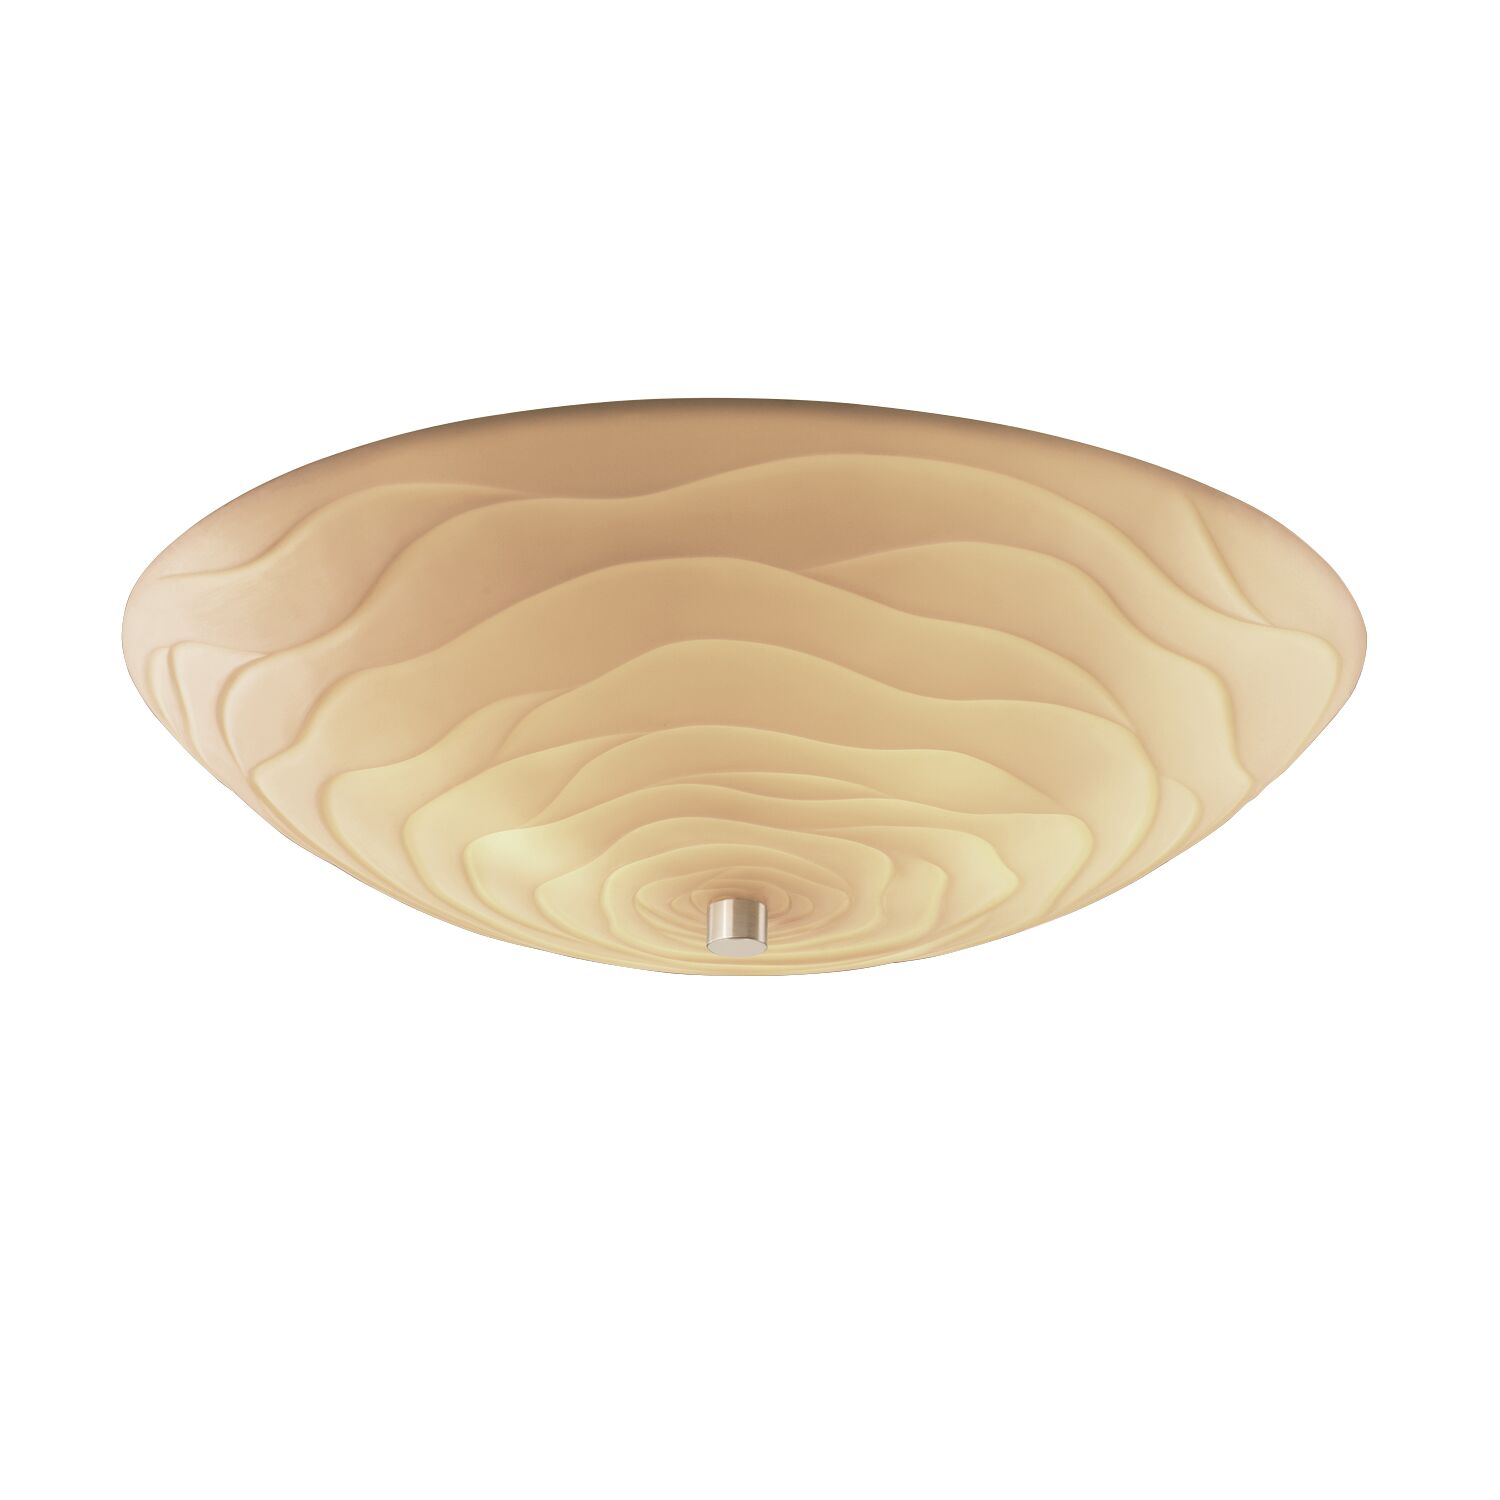 Thora Round Bowls 6-Light Flush Mount Finish: Polished Chrome, Impression: Sawtooth